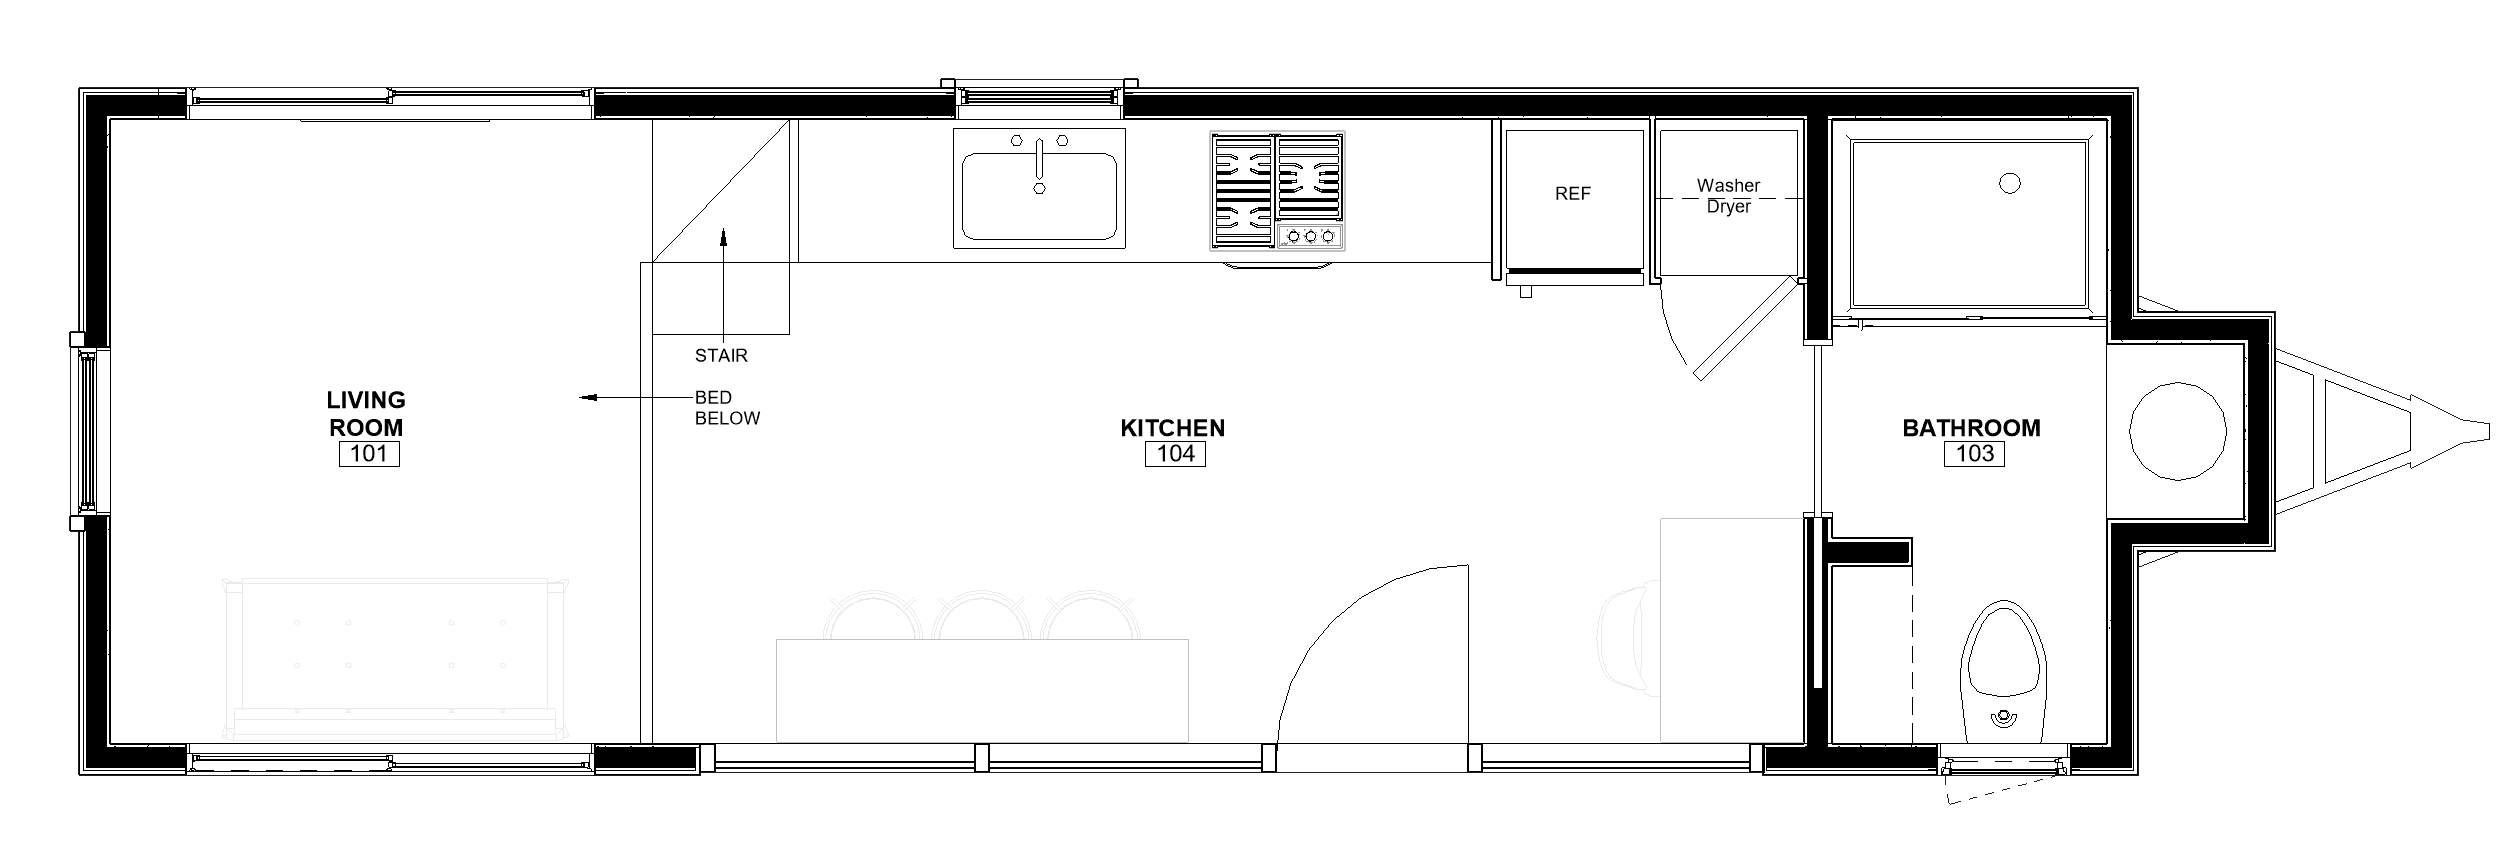 30ft Reverse Loft Pingora floor plan